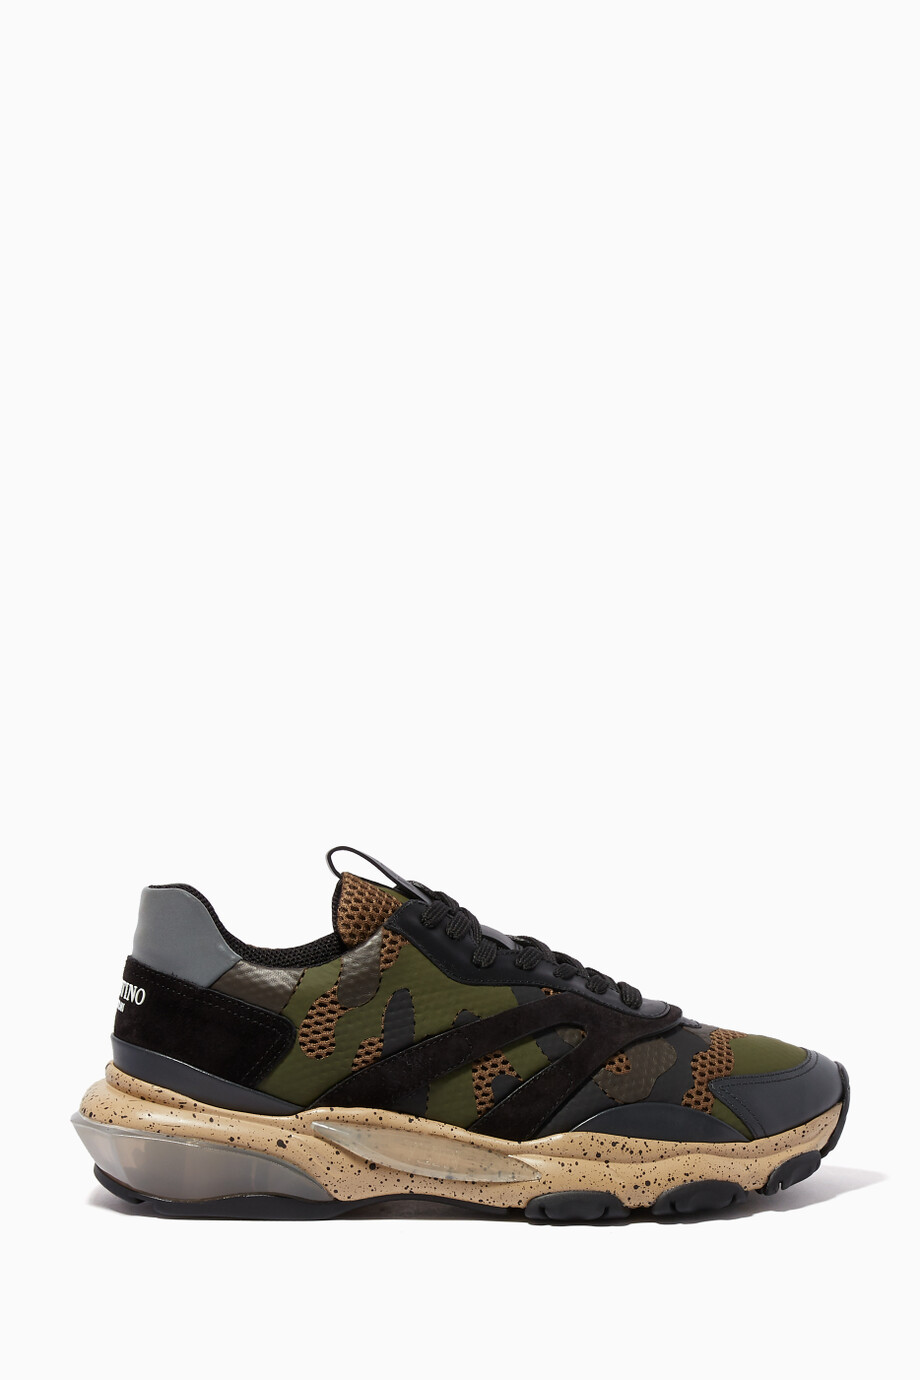 13e62370503d8 Shop Valentino Green Dark-Green Camouflage Print Bounce Sneakers for ...